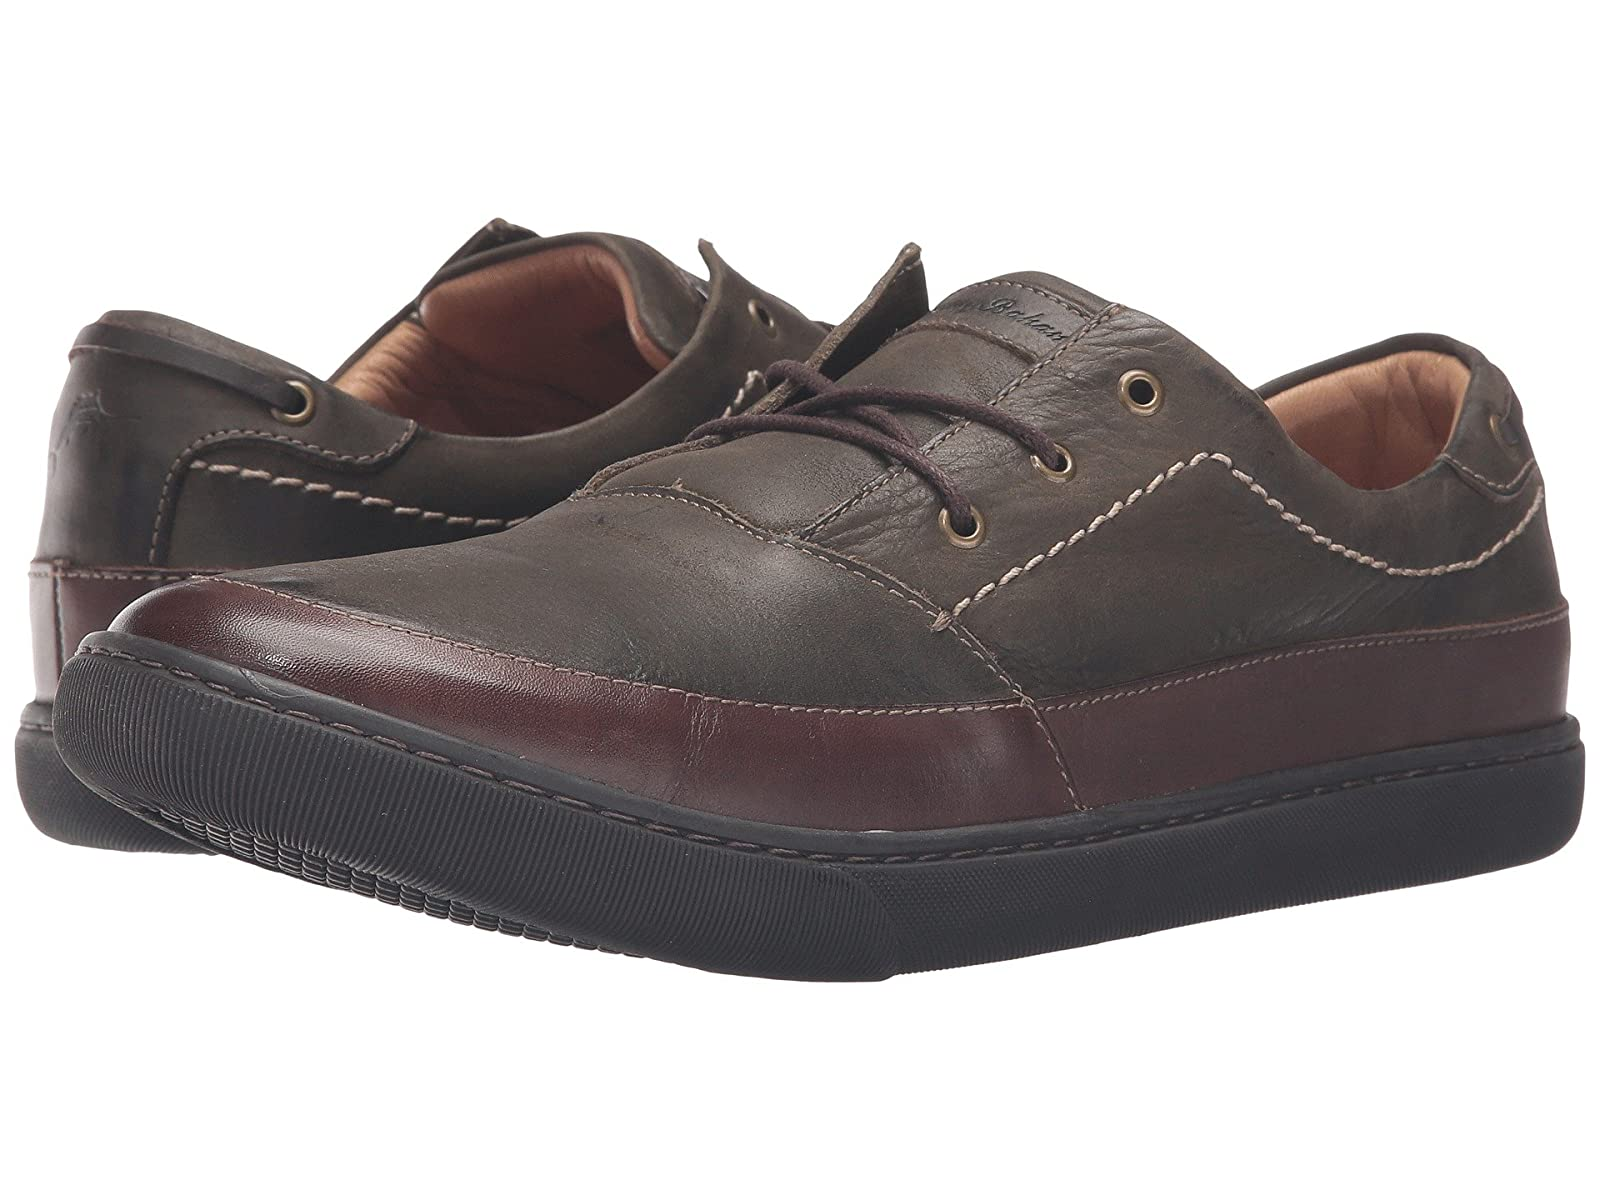 Tommy Bahama YorkeCheap and distinctive eye-catching shoes